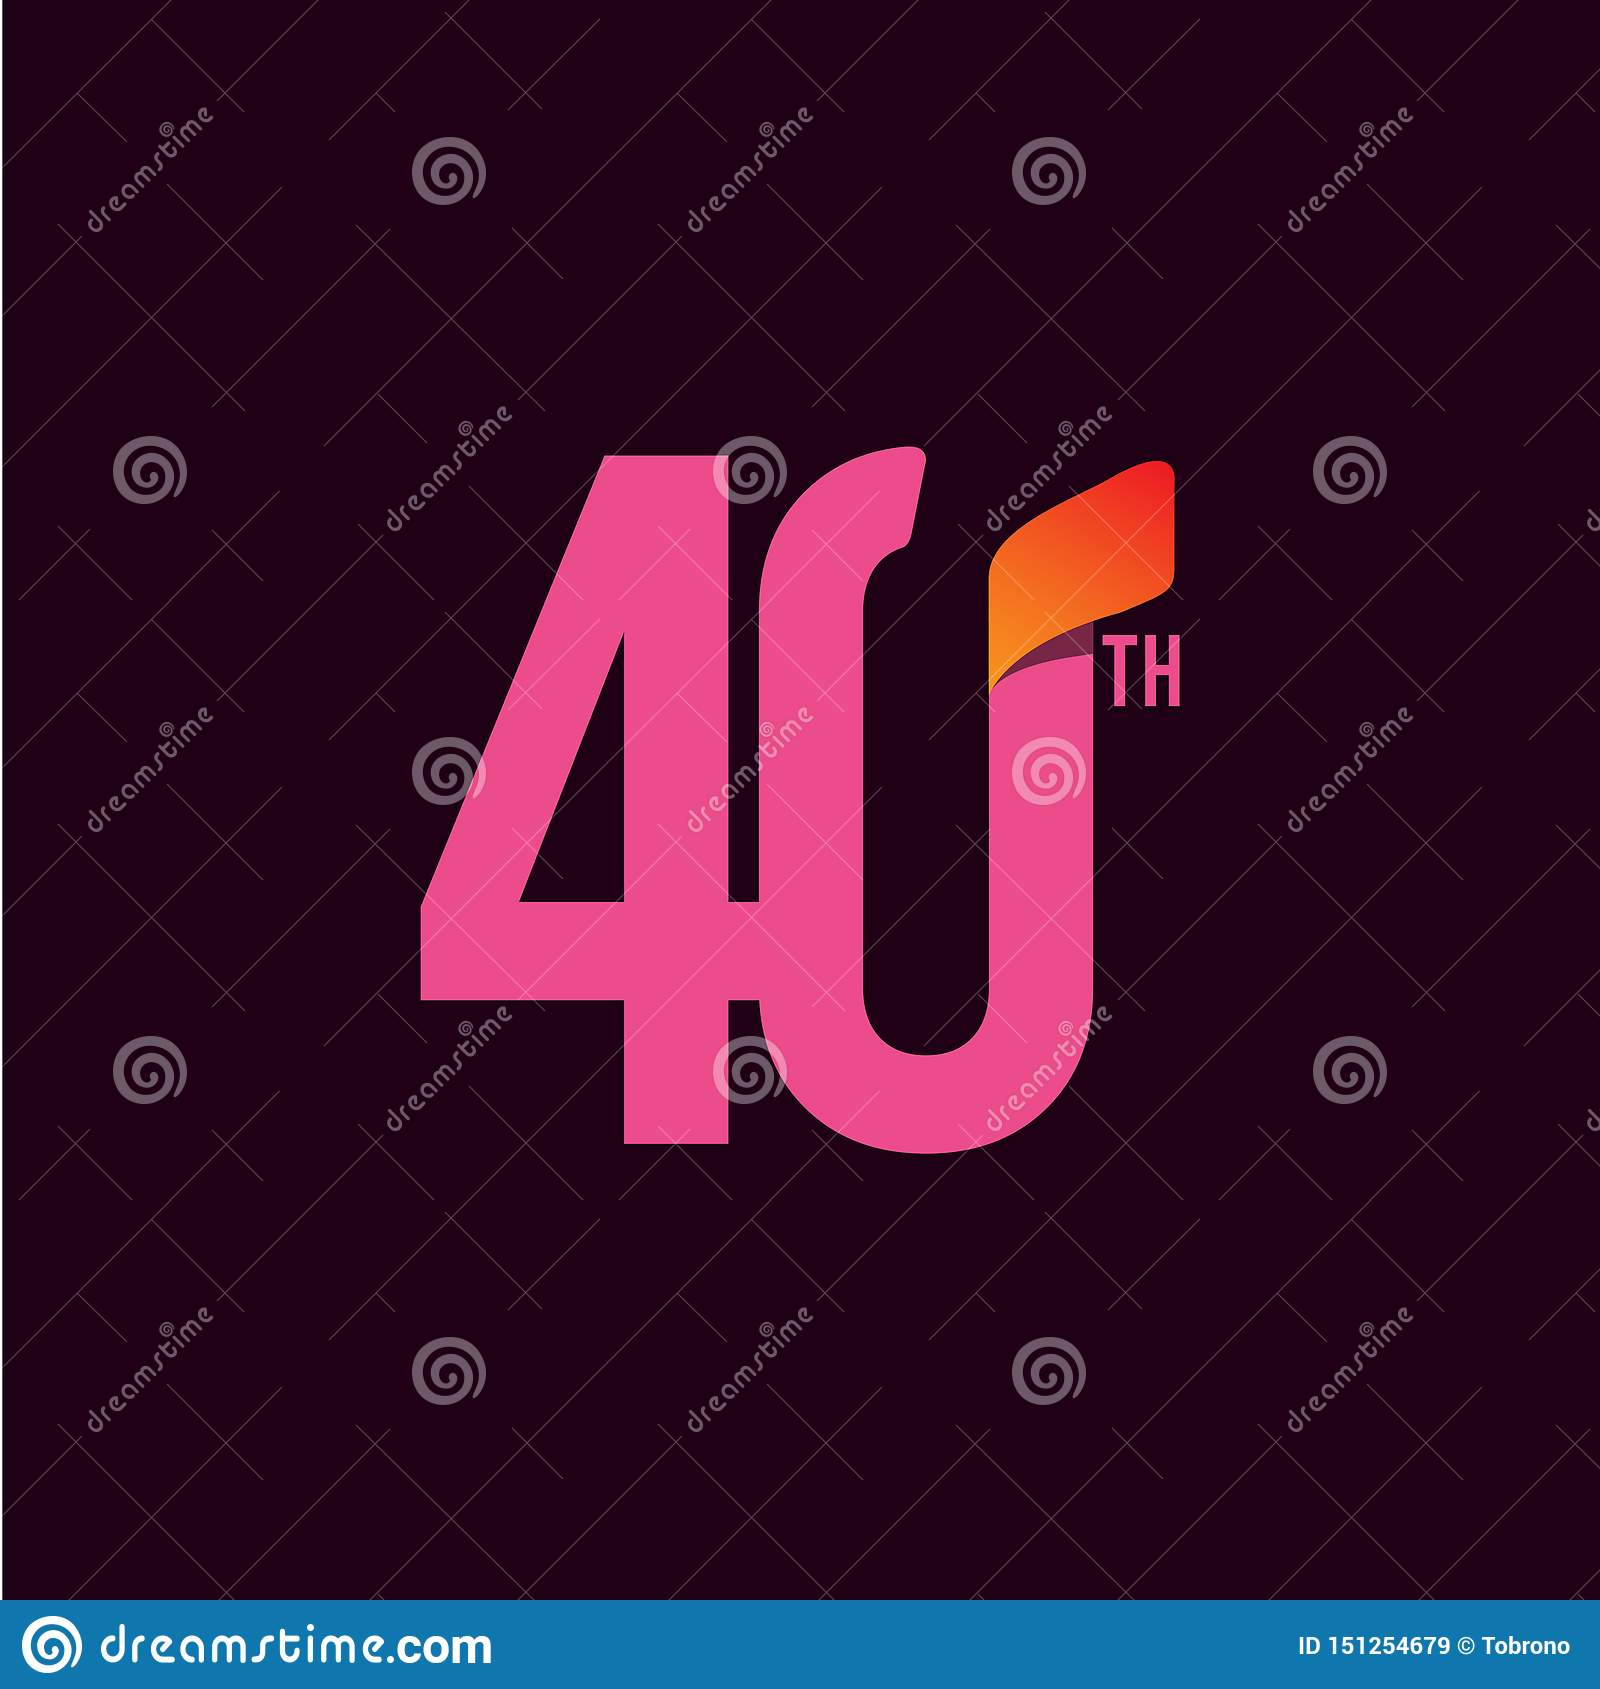 40 Year Anniversary Celebration Vector Template Design Illustration